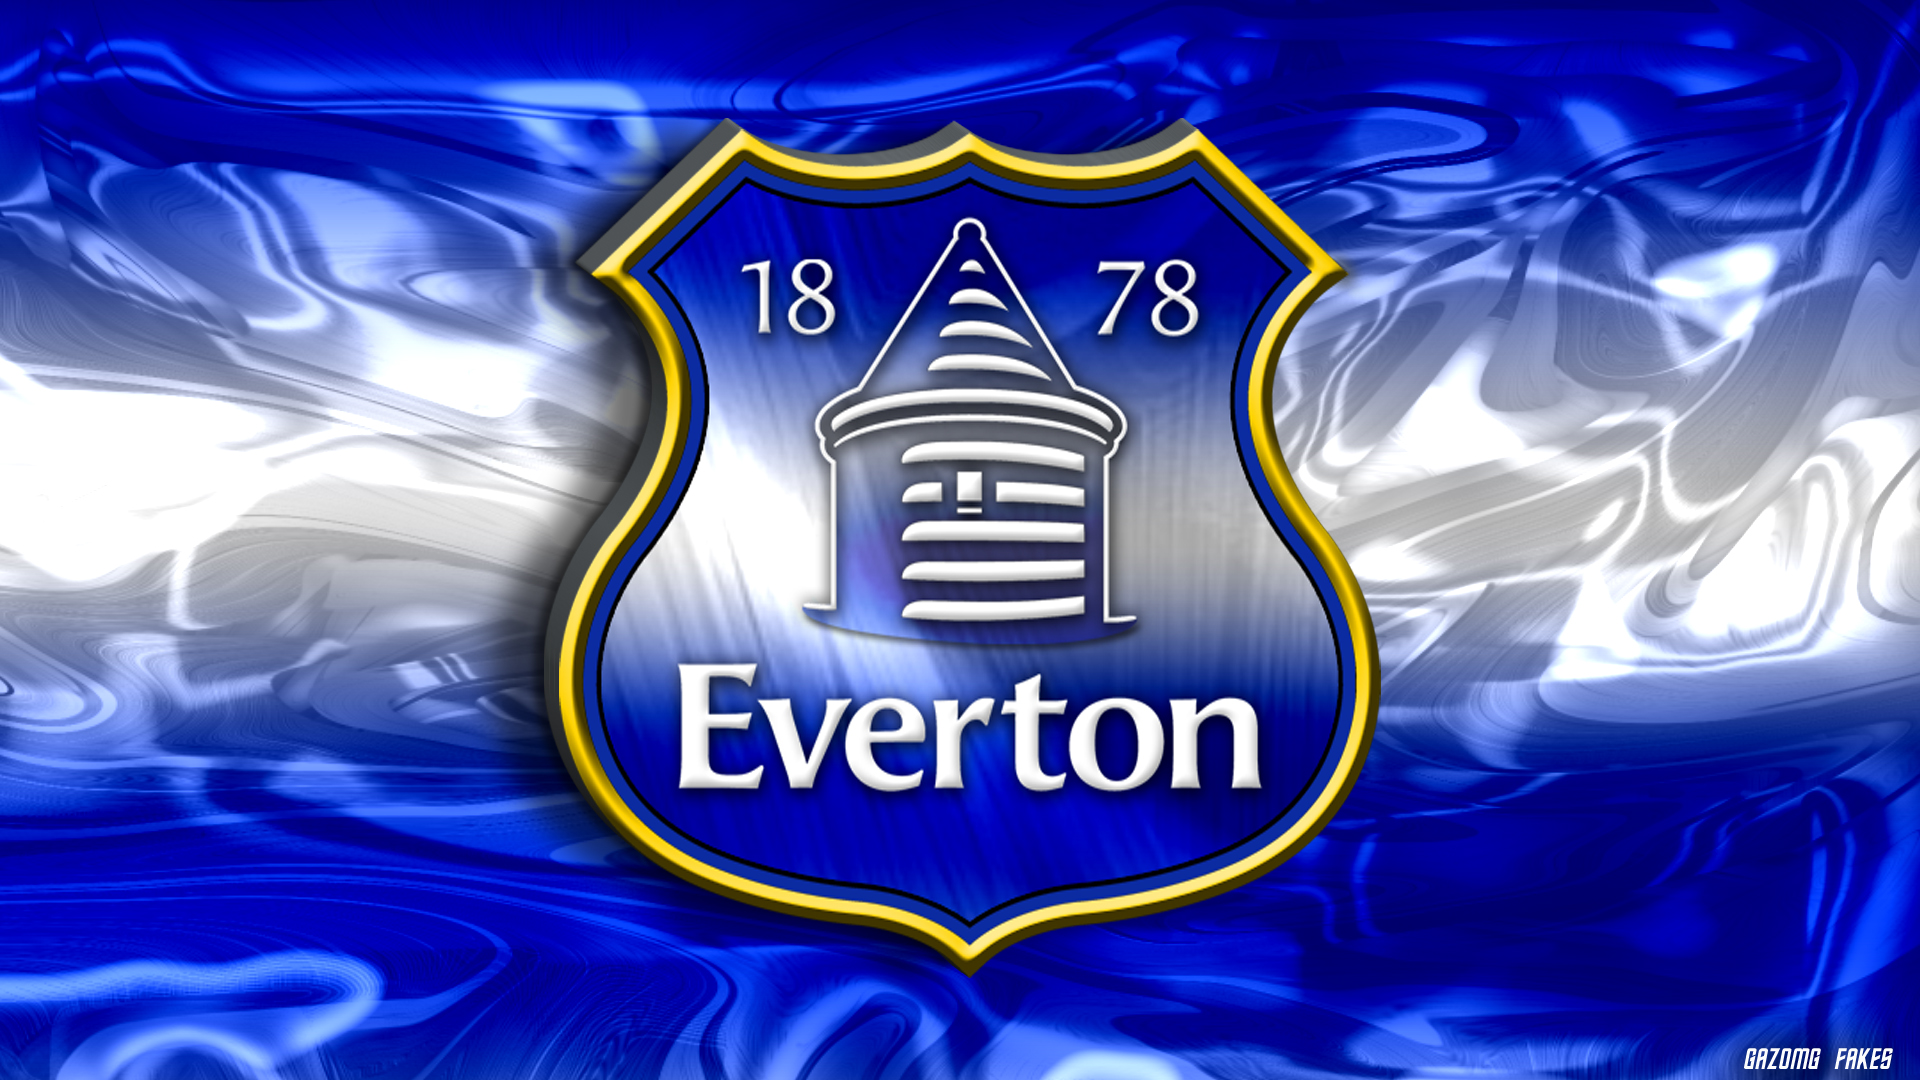 Everton Iphone Wallpaper Posted By Zoey Simpson